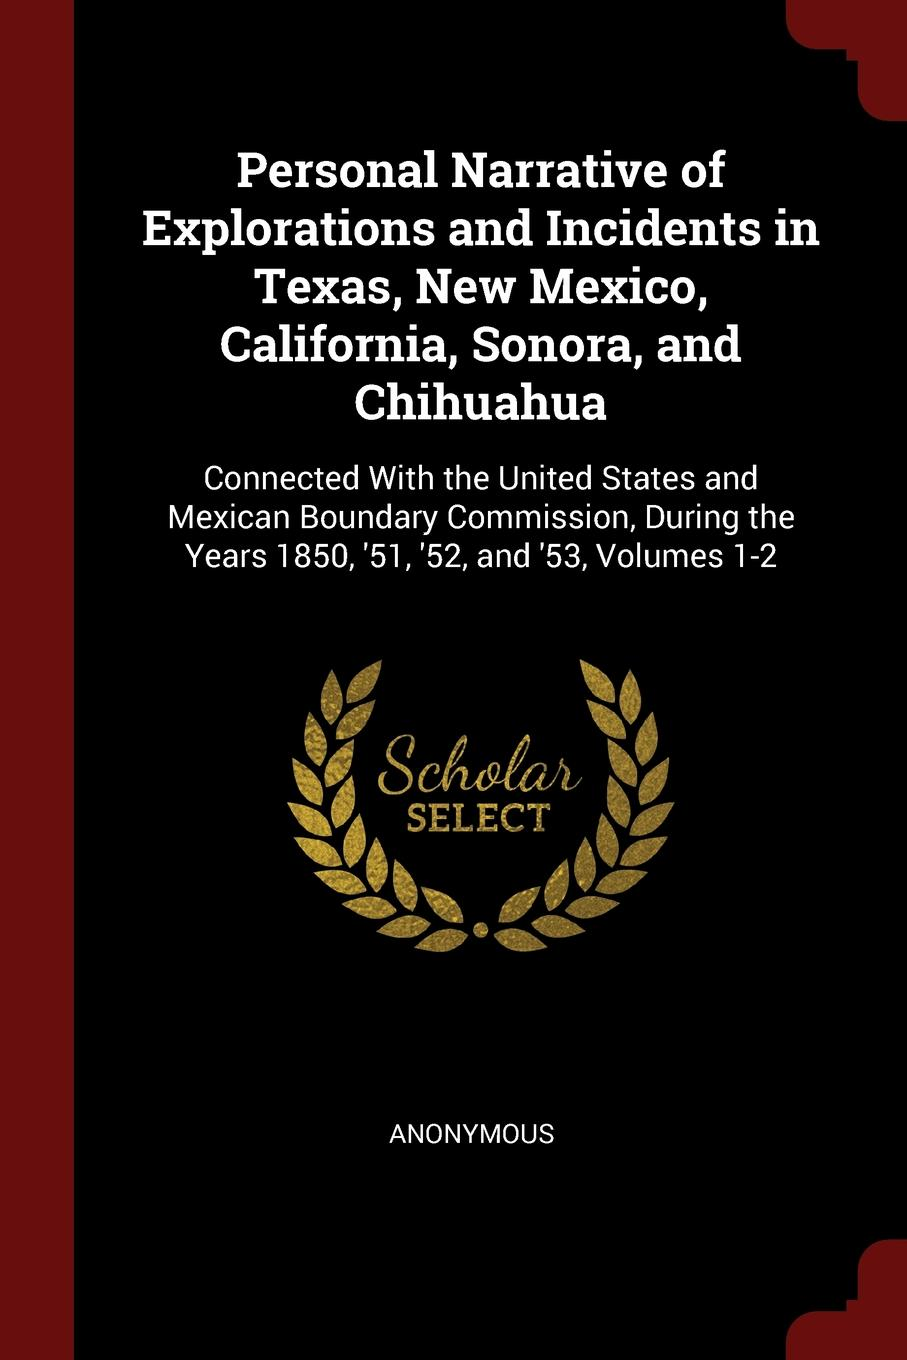 Personal Narrative of Explorations and Incidents in Texas, New Mexico, California, Sonora, and Chihuahua. Connected With the United States and Mexican Boundary Commission, During the Years 1850, .51, .52, and .53, Volumes 1-2